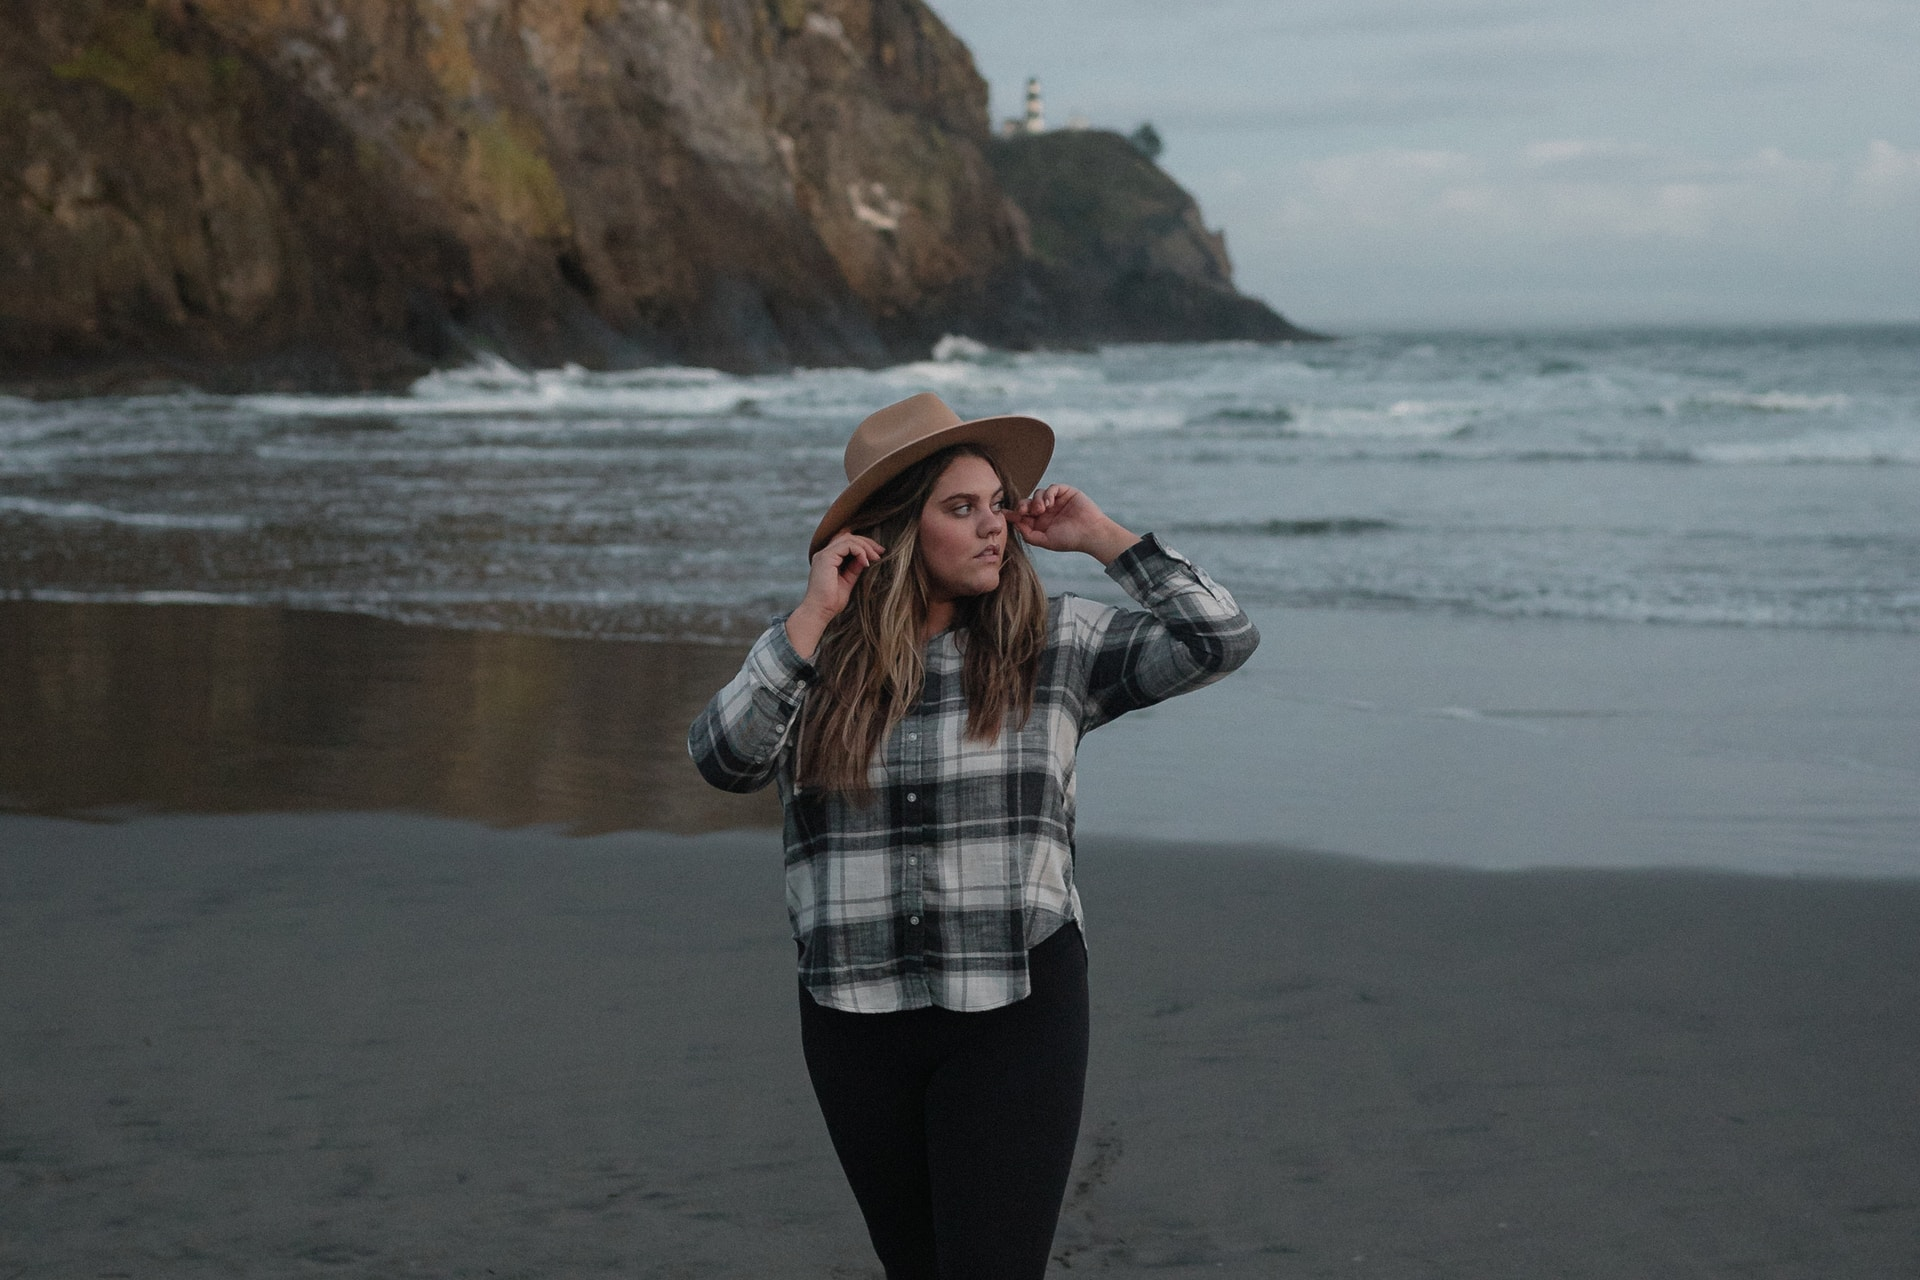 woman in black and white plaid long sleeve shirt standing on beach shore during daytime